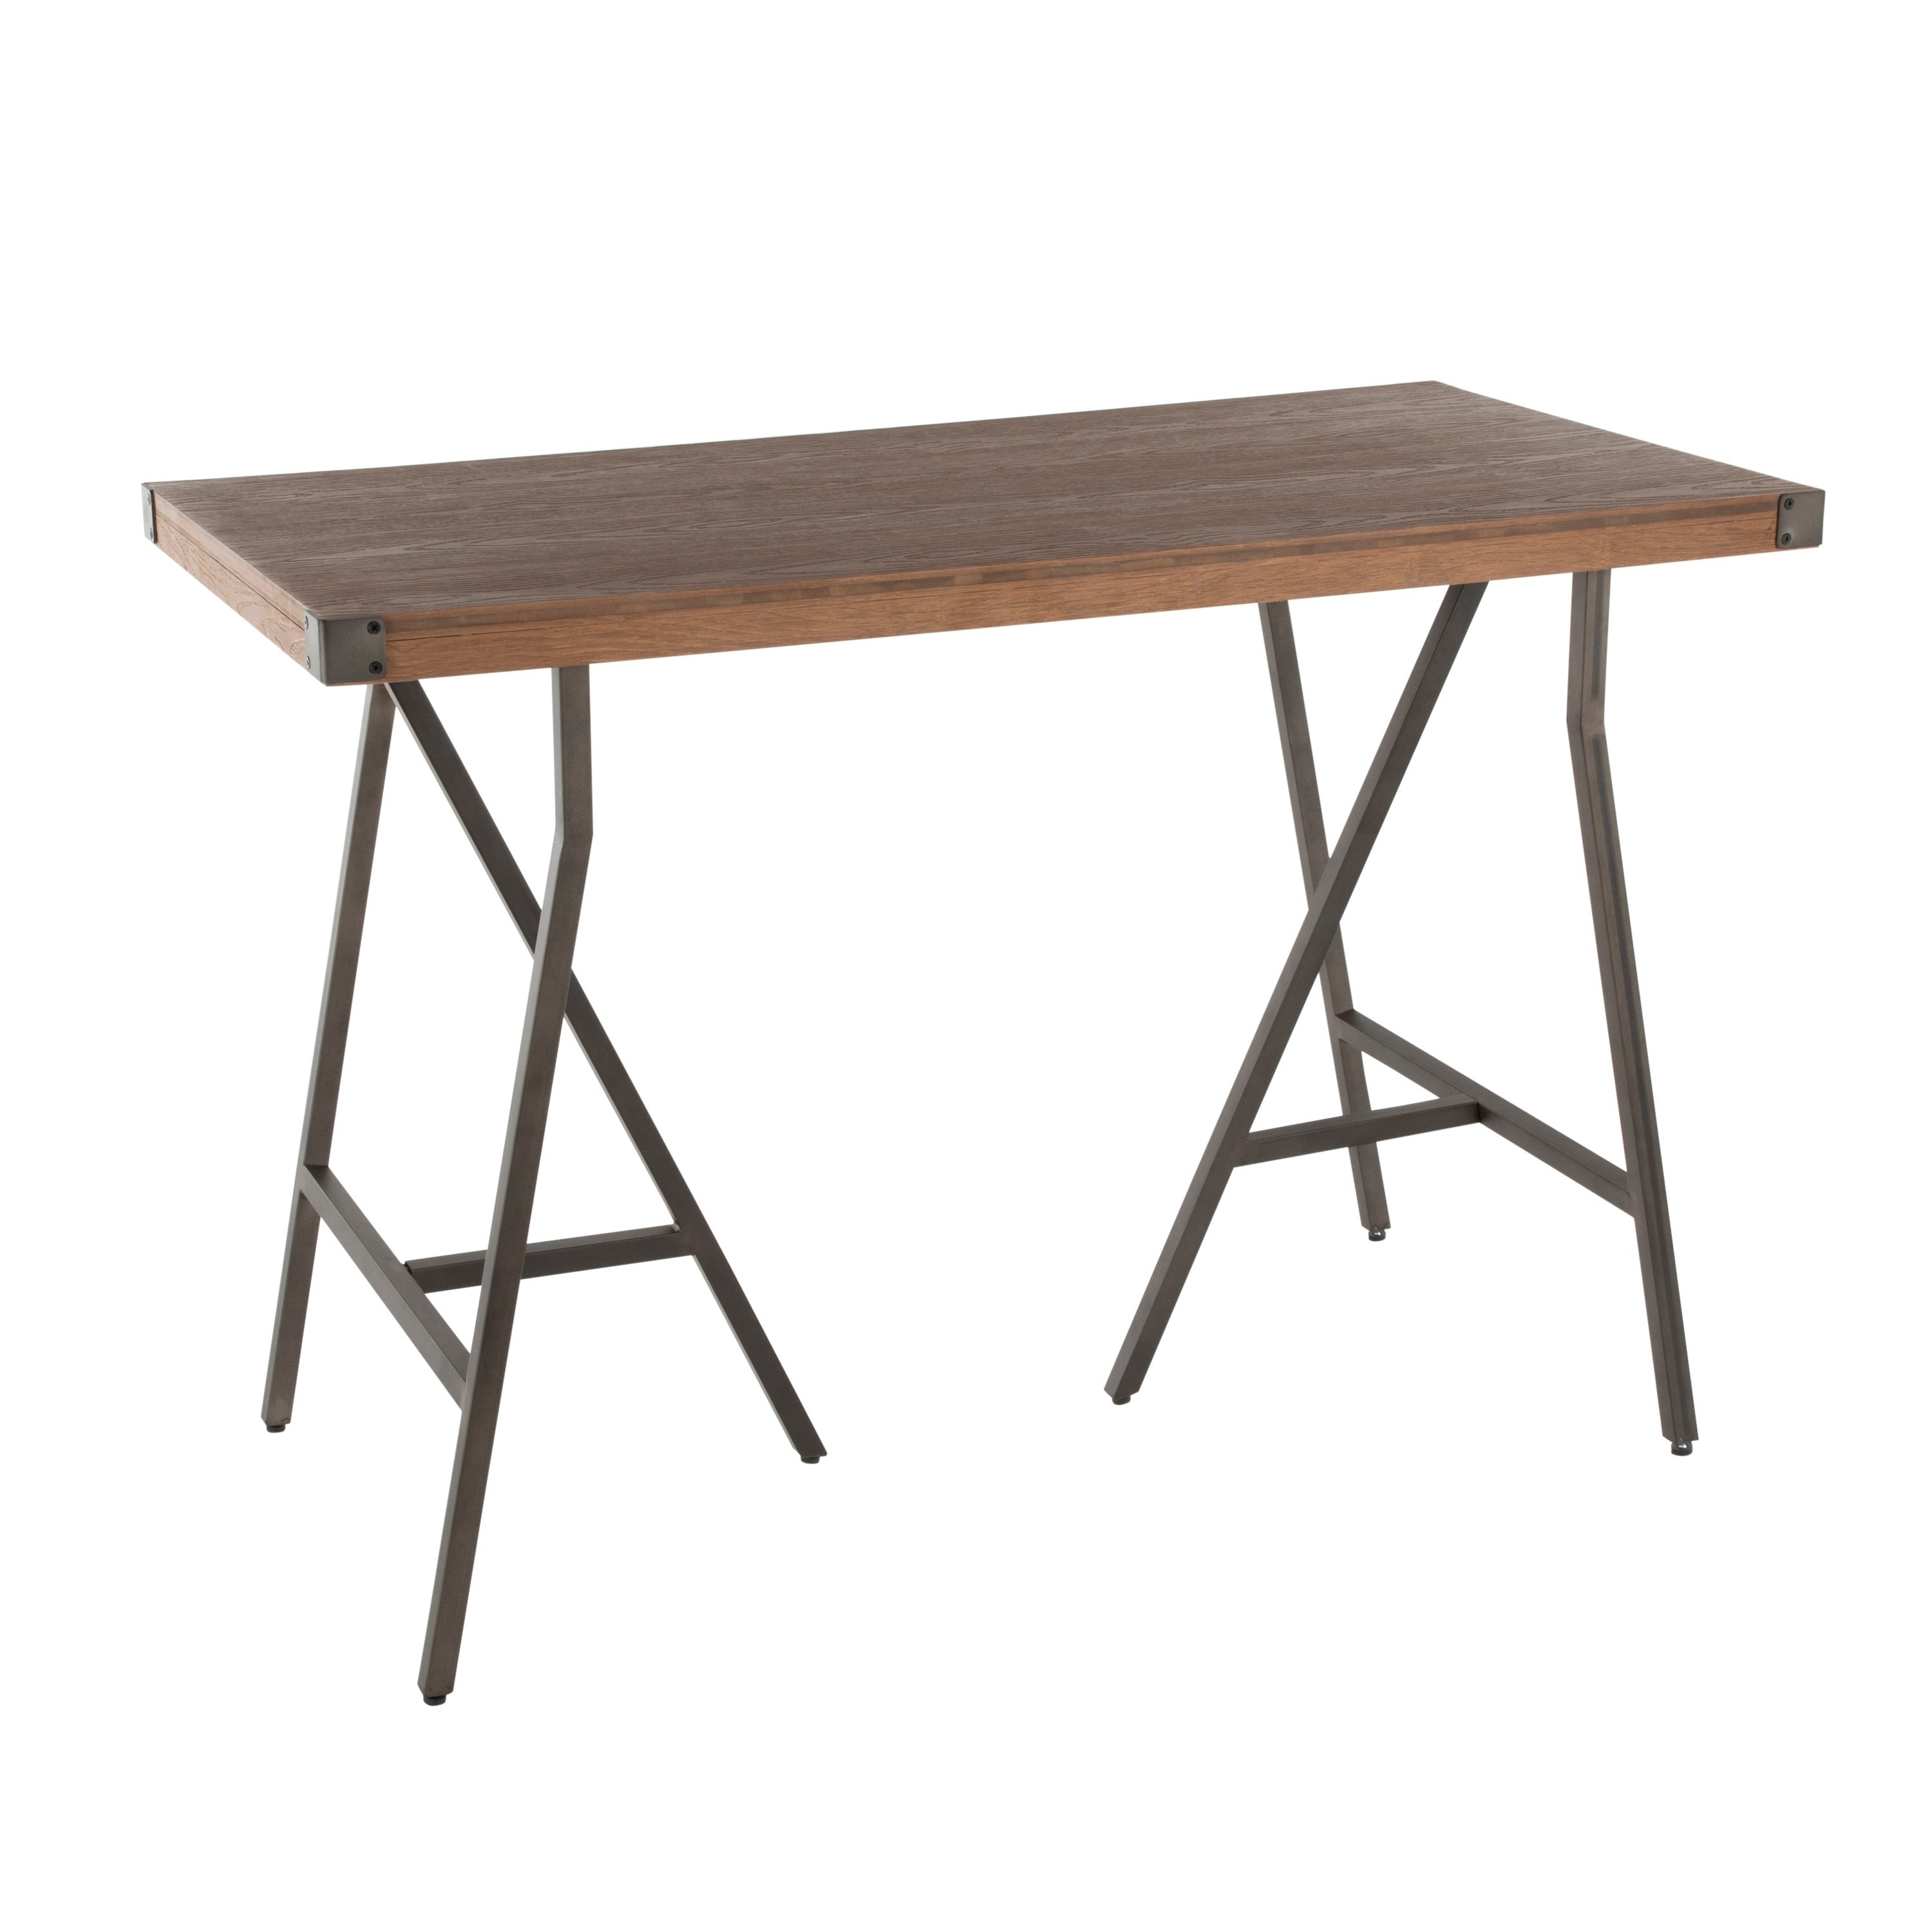 Carbon Loft Patti Industrial Counter Height Dining Table in Antique/Brown Finish